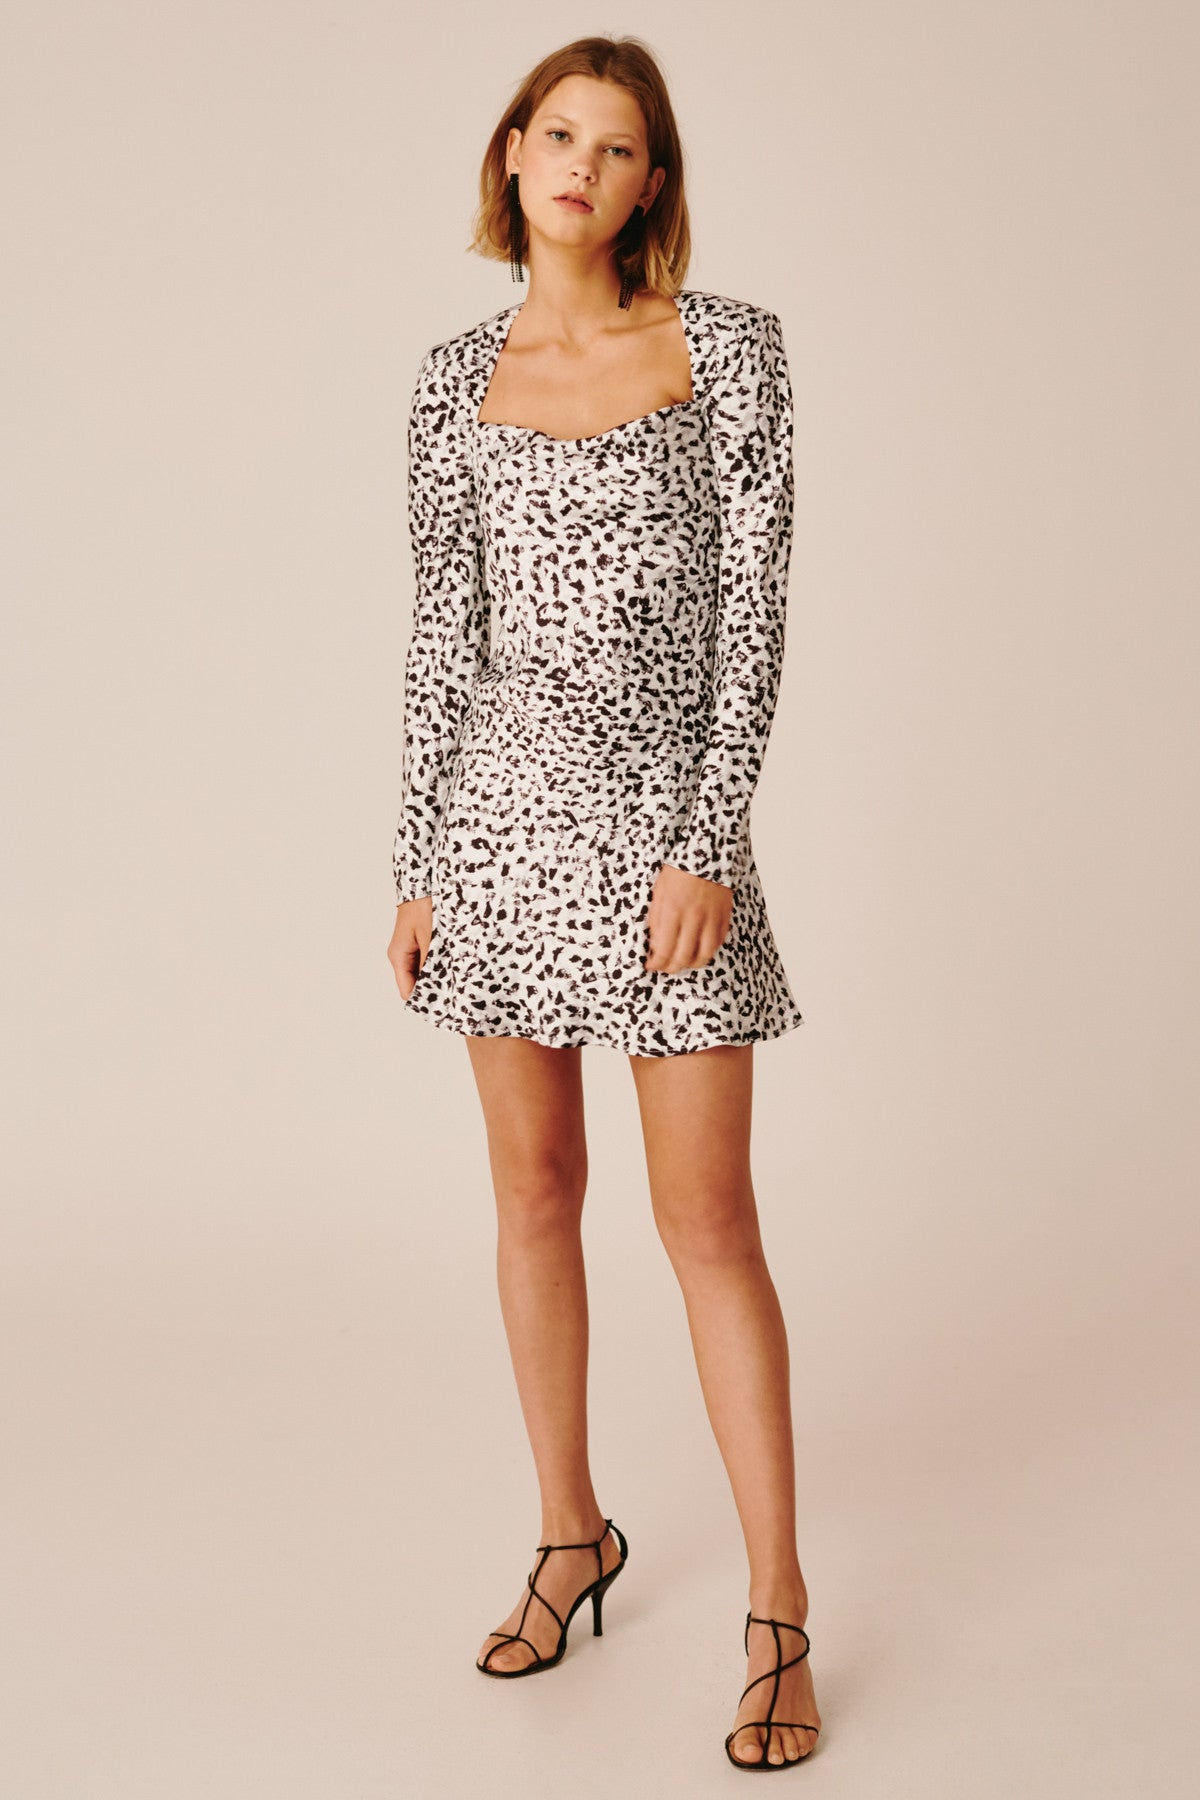 POLARISED LONG SLEEVE DRESS ivory painted spot